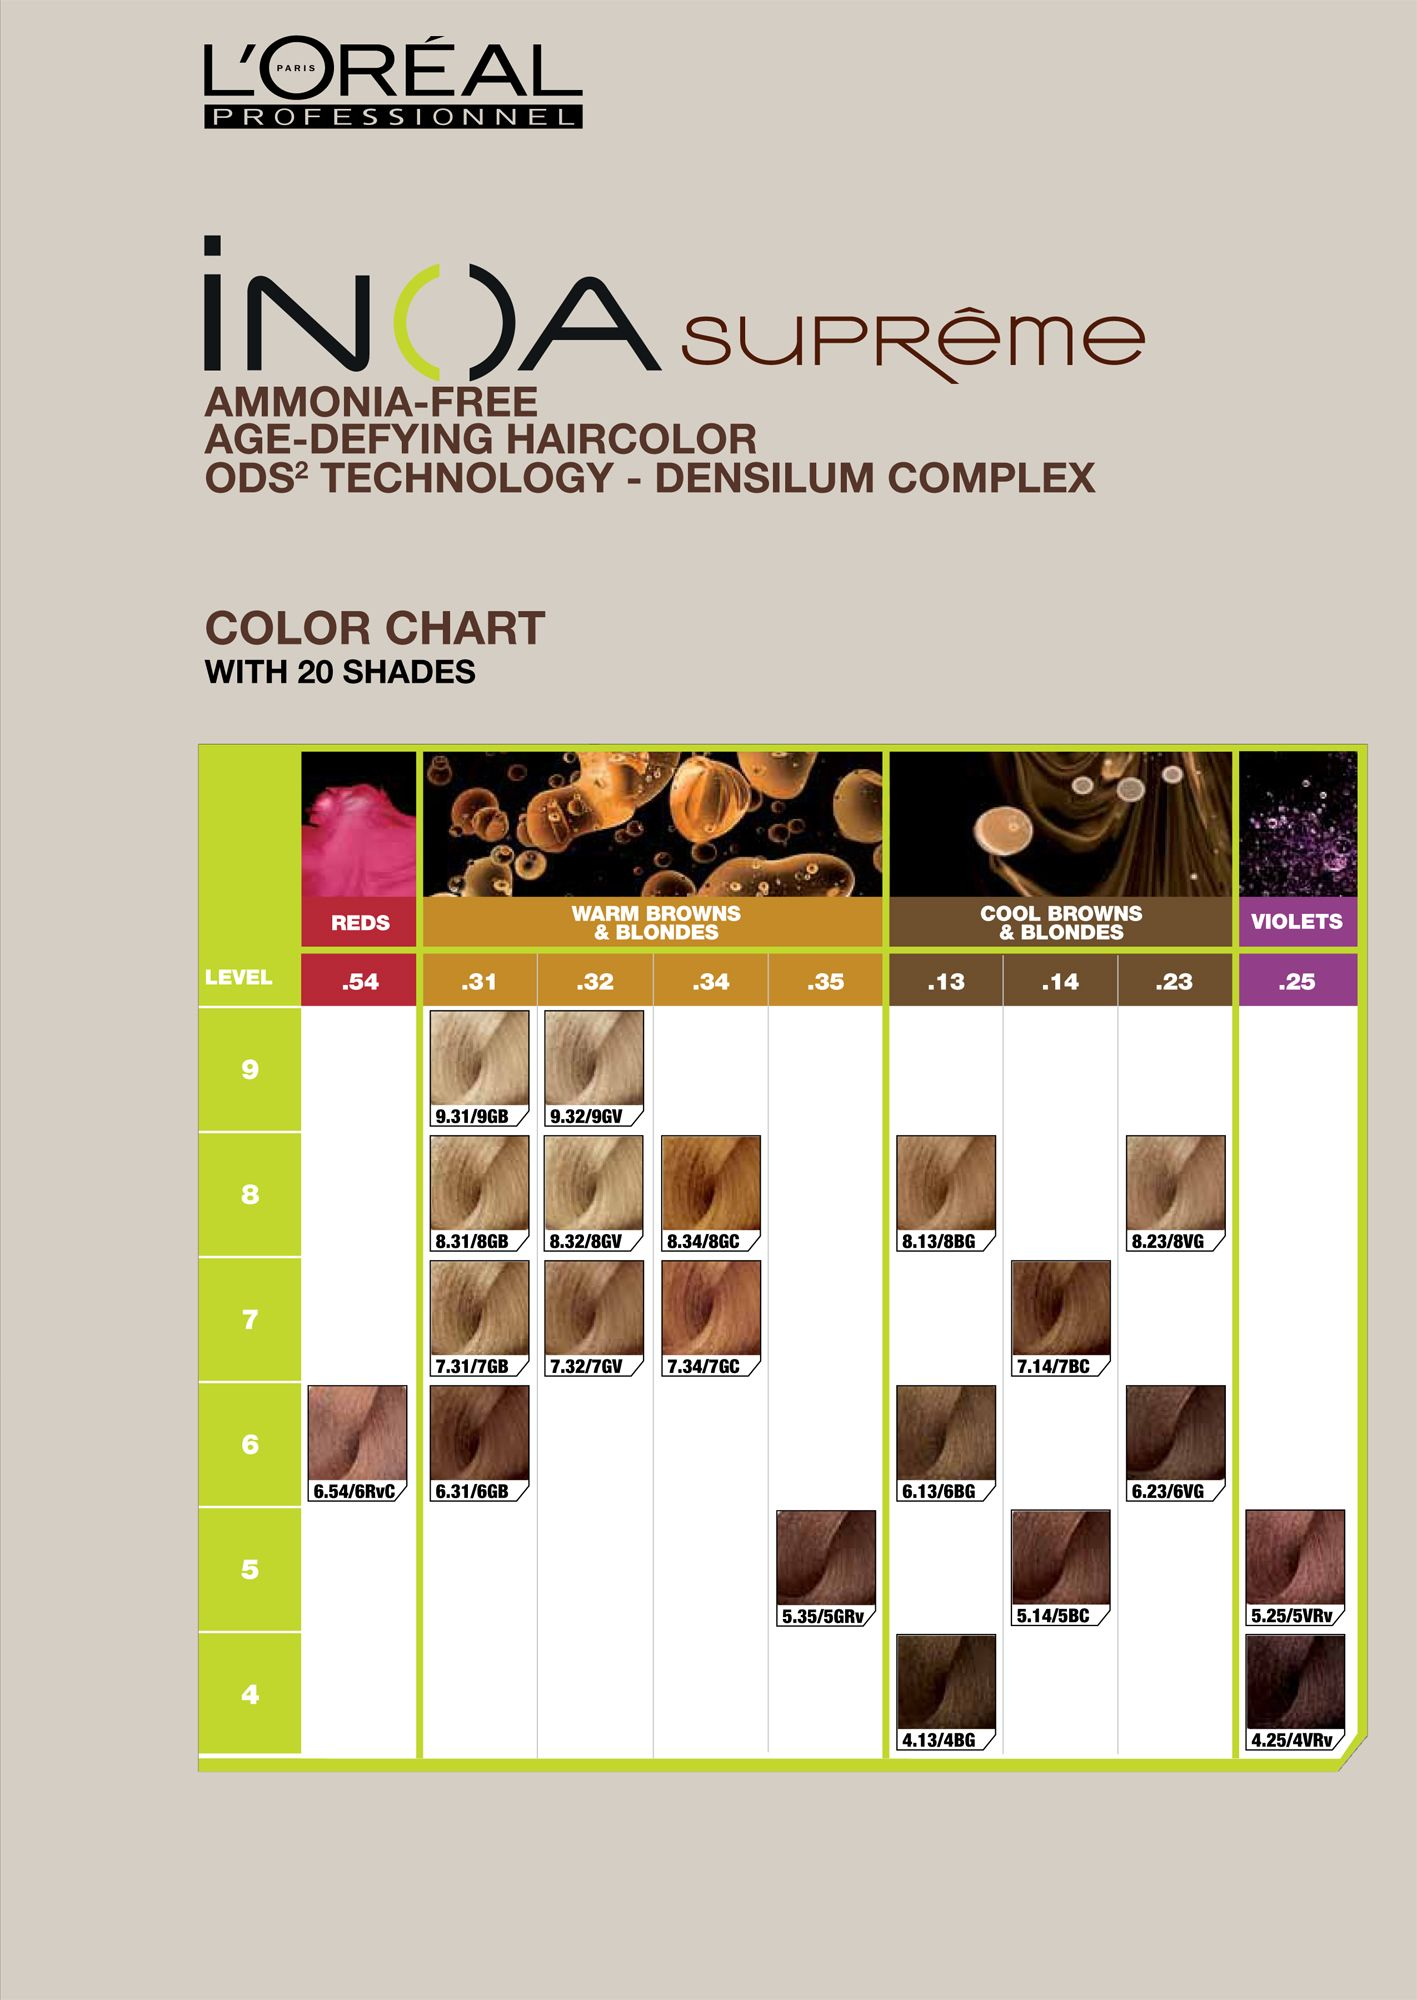 L or al professionnel inoa supreme with ods2 color chart hair